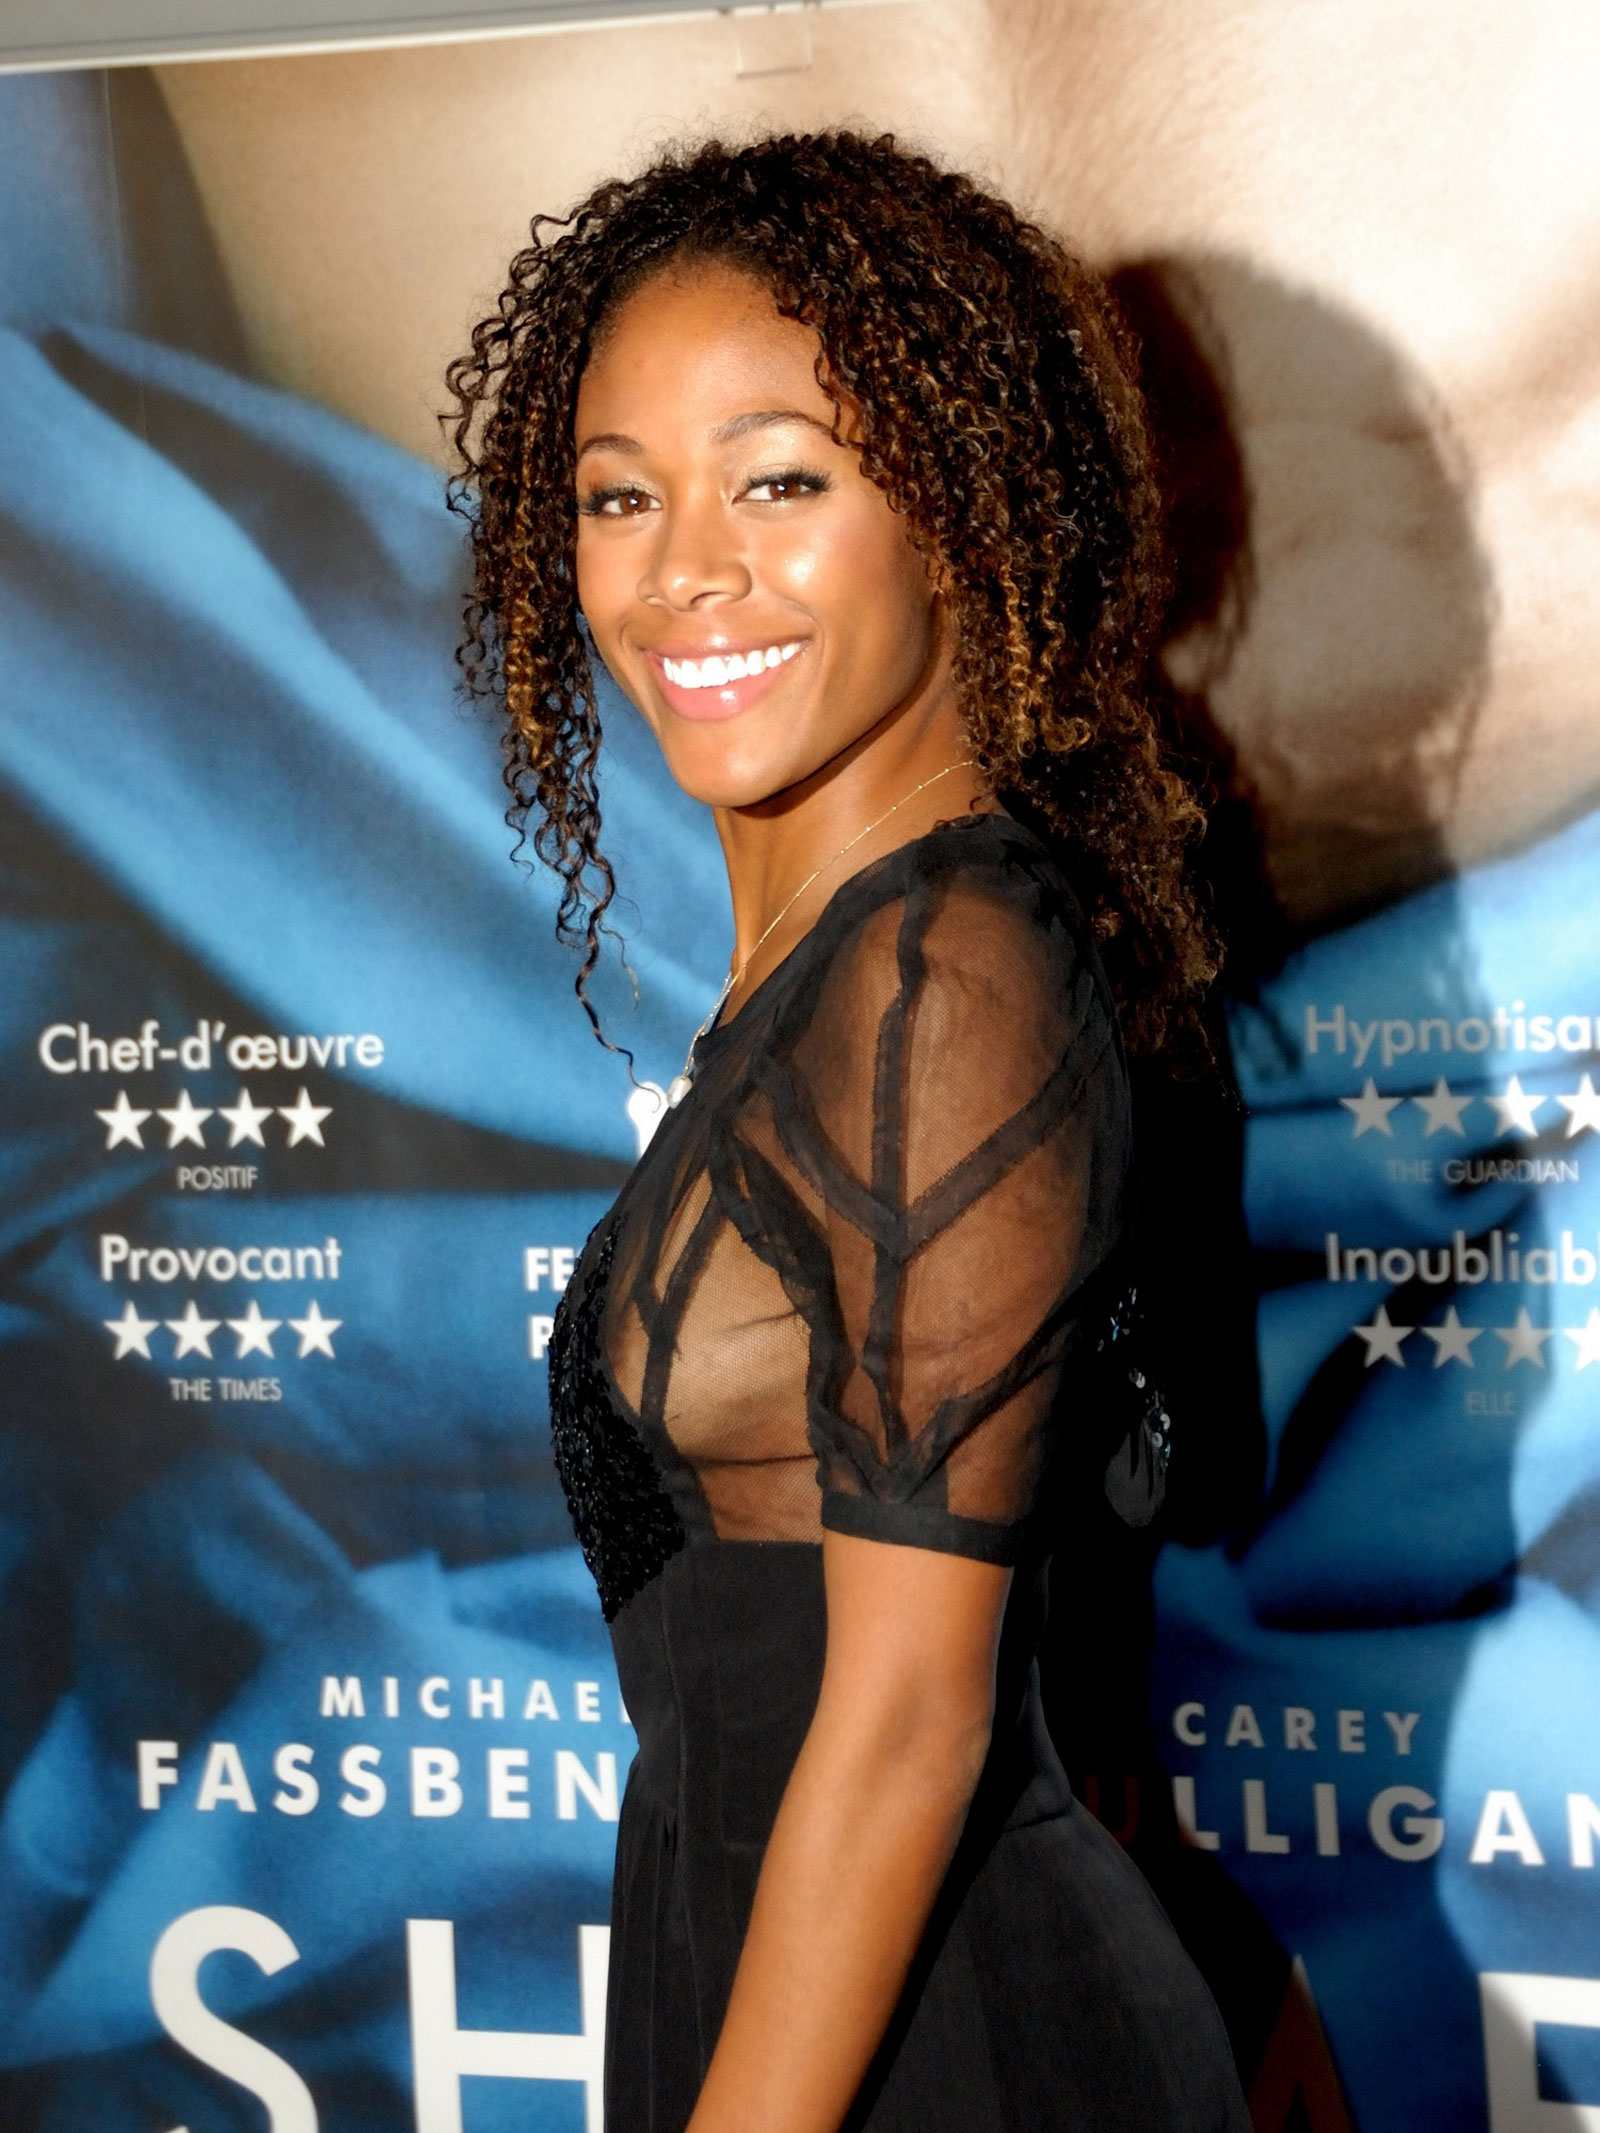 Nicole-Beharie-at-Shame-Premiere-in-Paris-3.jpg